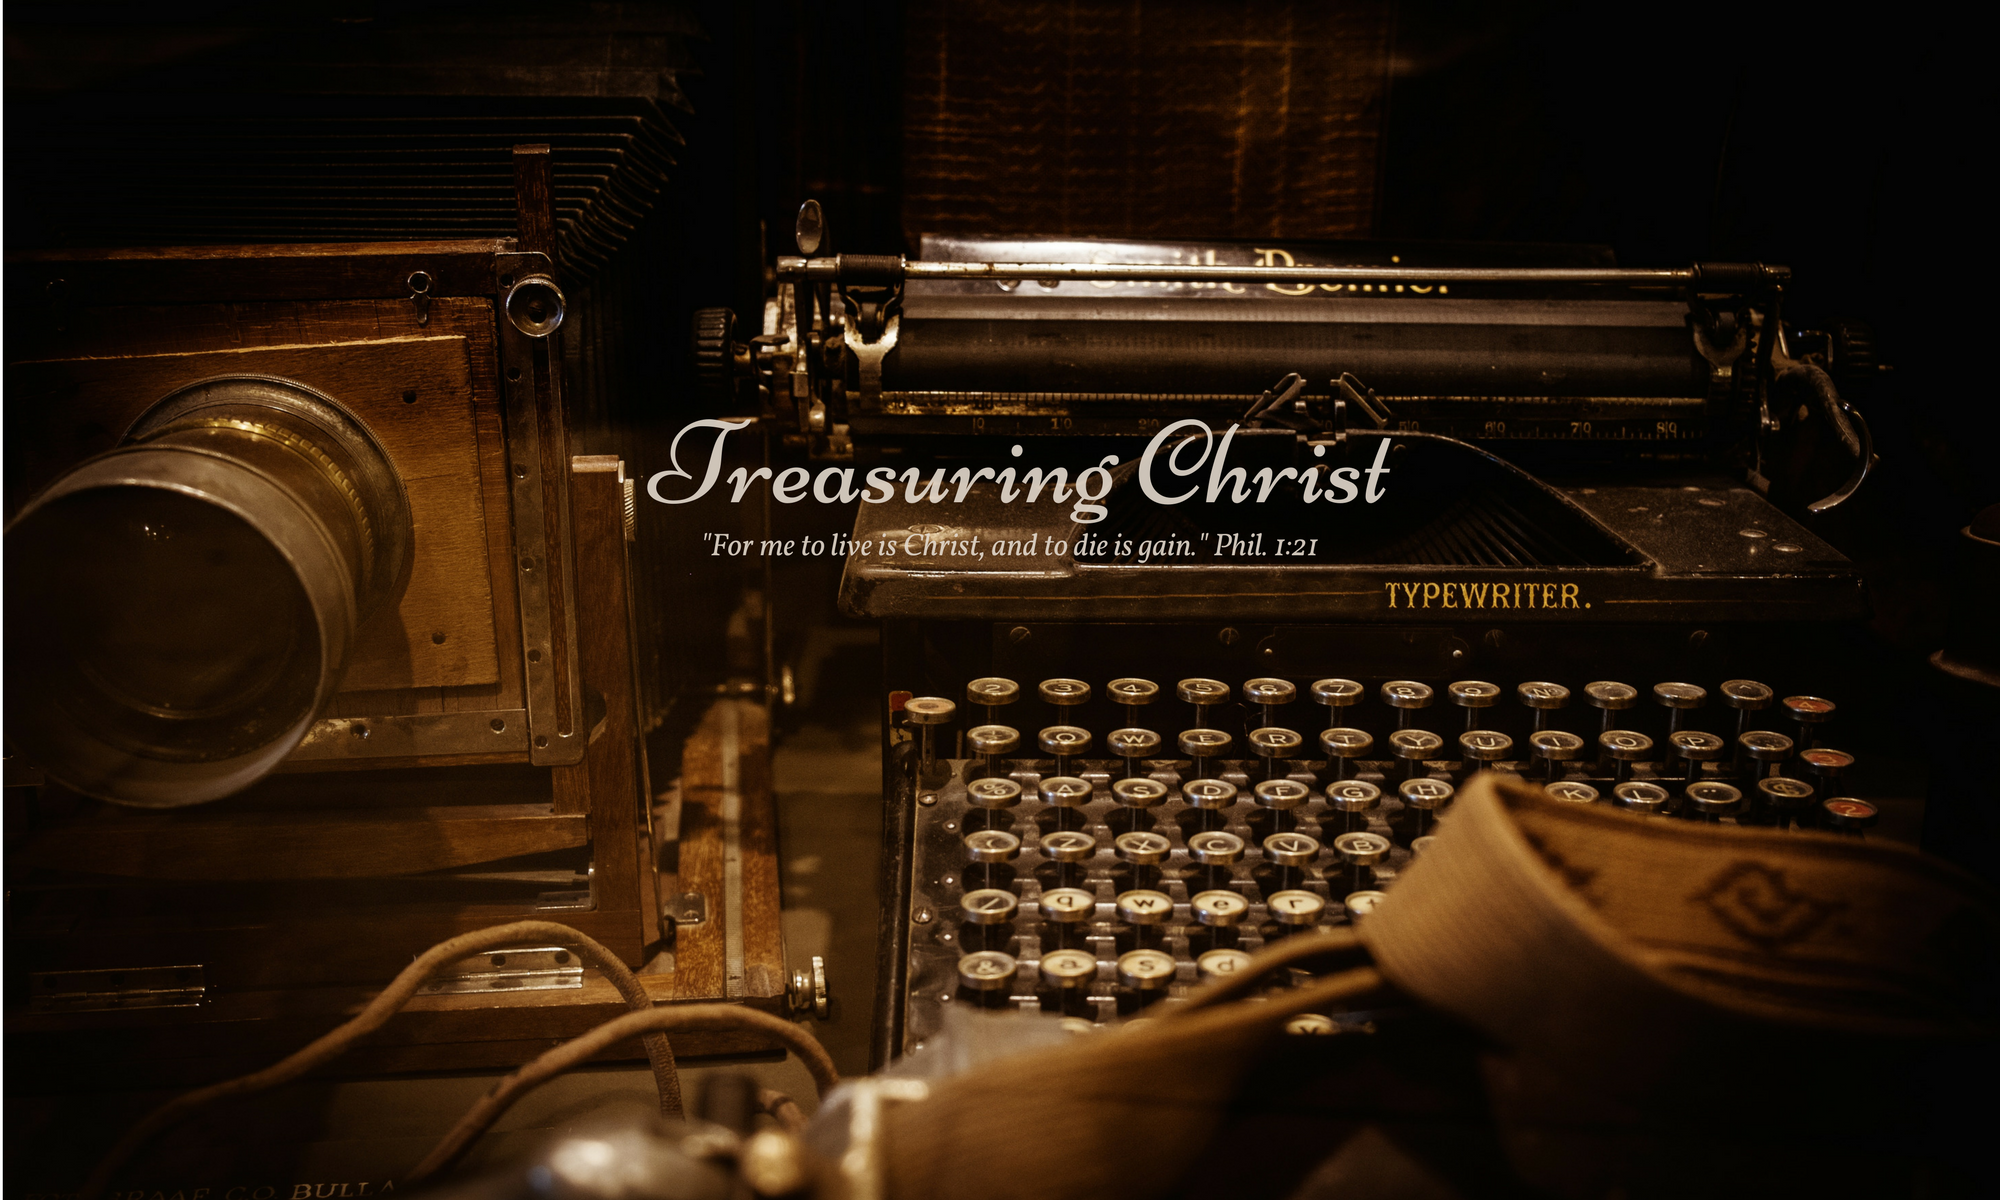 Treasuring Christ